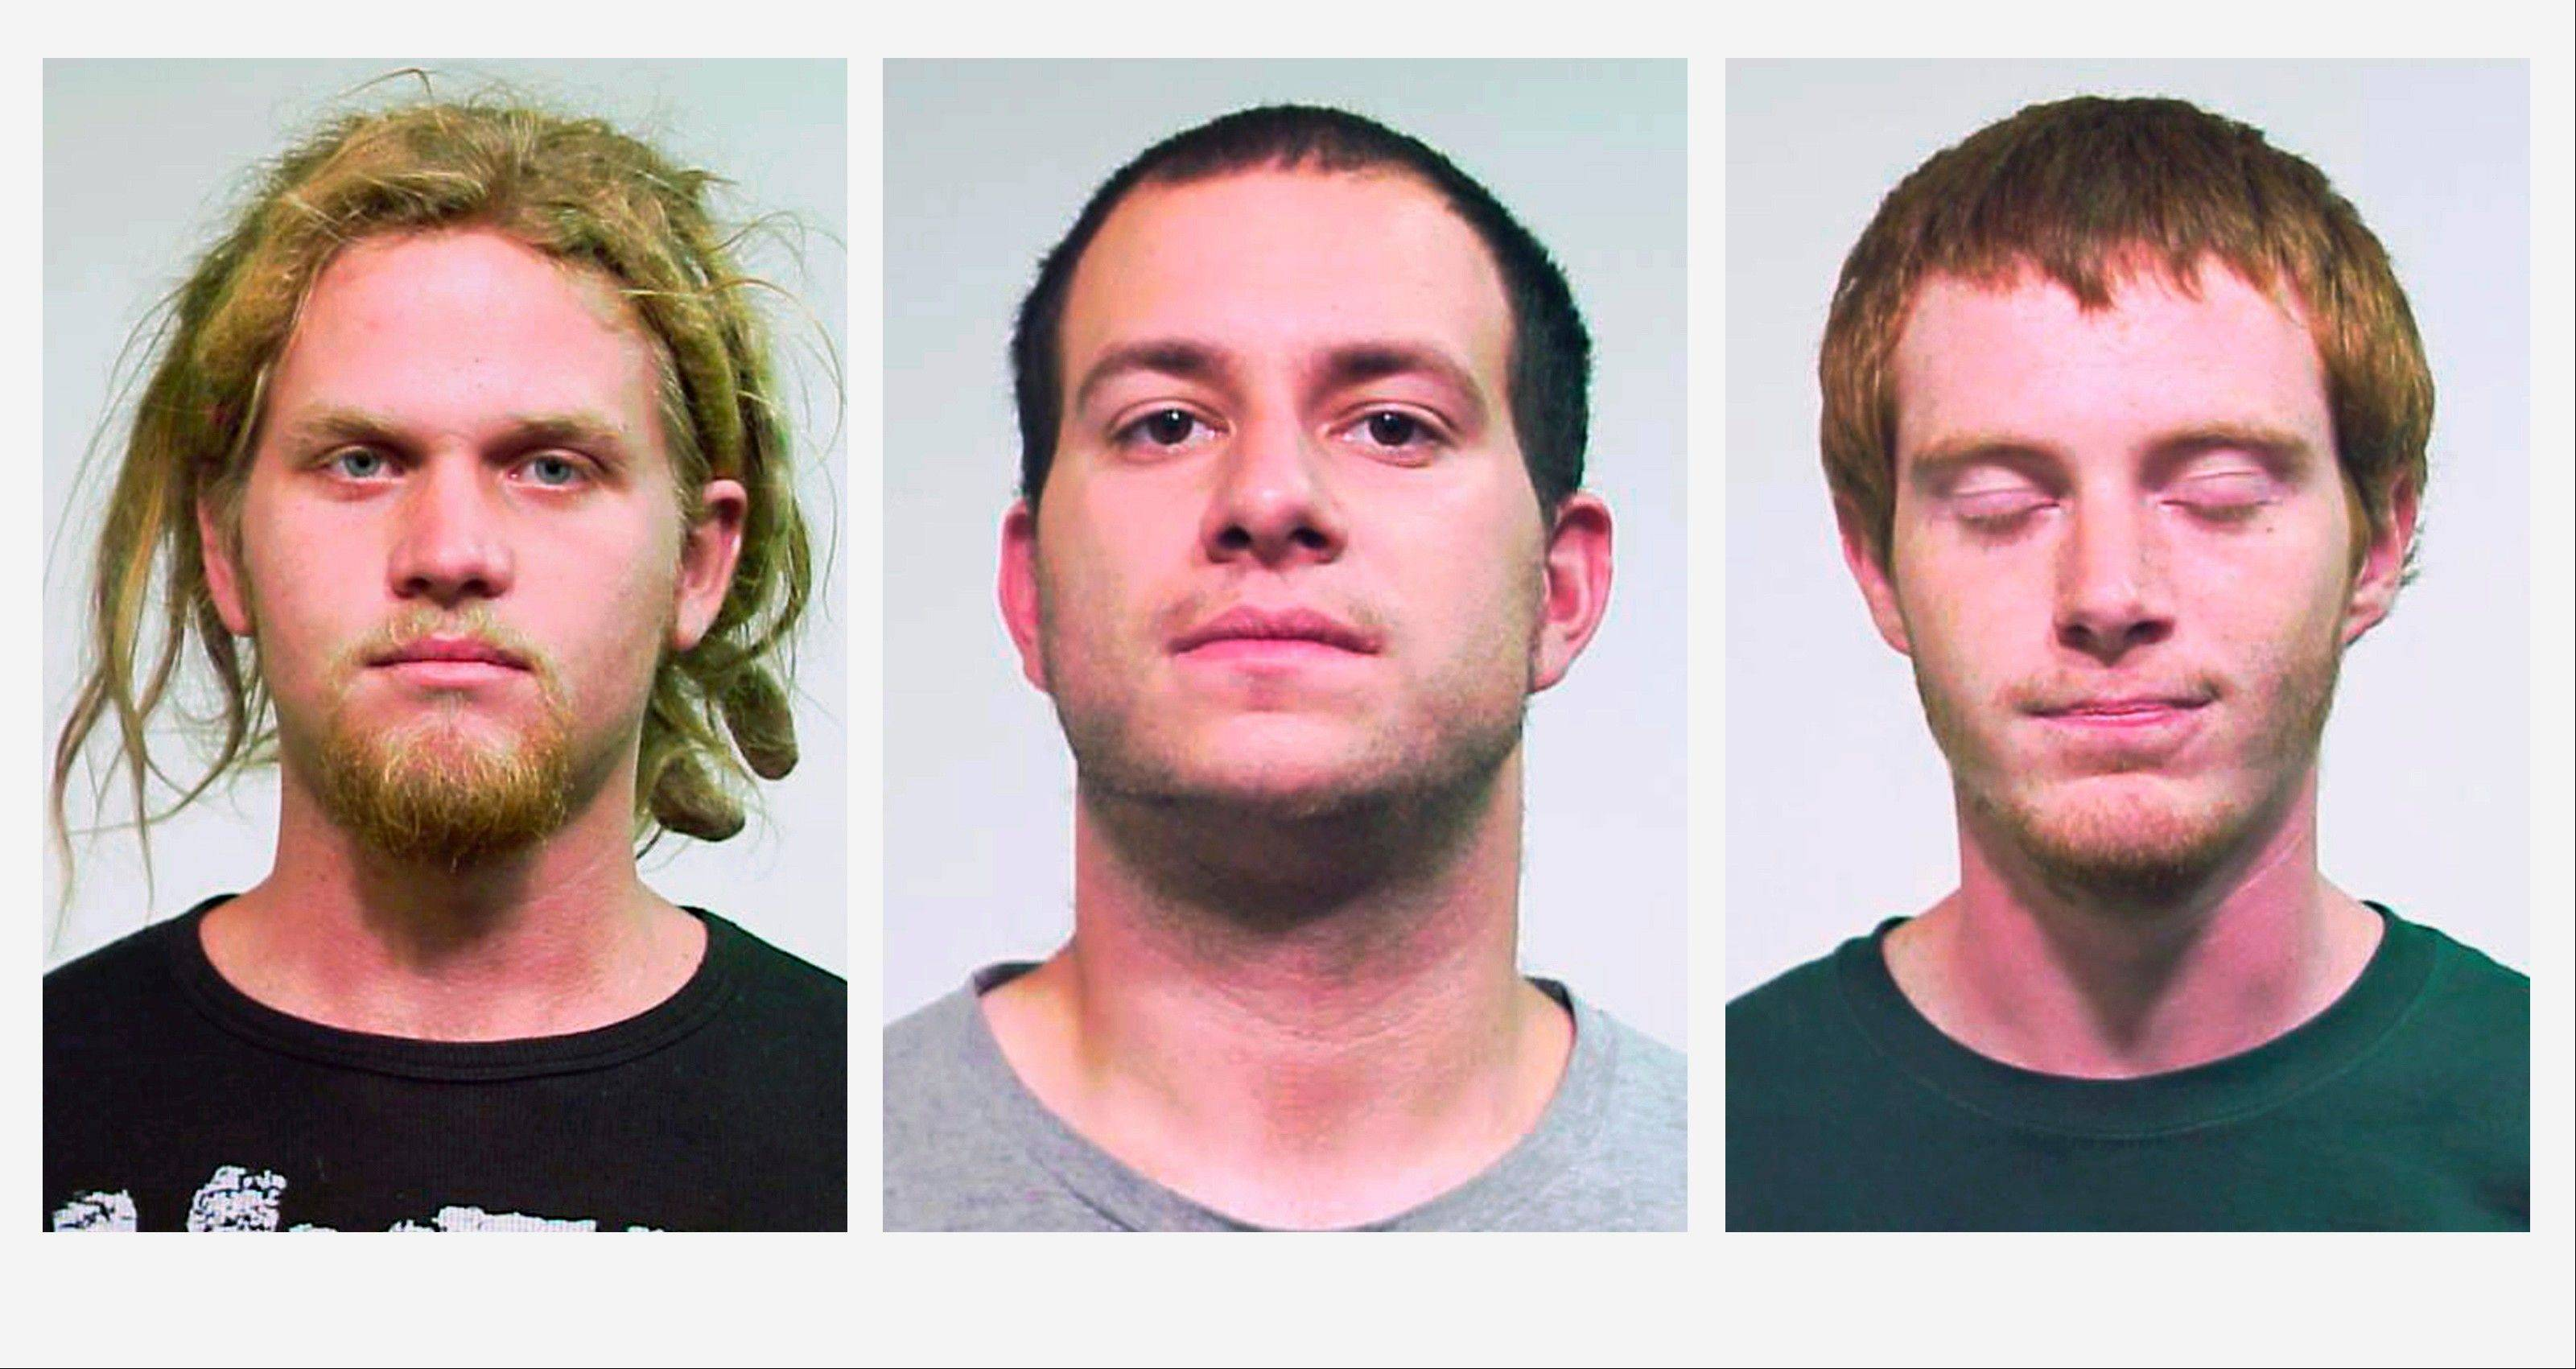 Brent Vincent Betterly, 24, of Oakland Park, Fla., Jared Chase, 24, of Keene, N.H., and Brian Church, 20, of Fort Lauderdale, Fla., are accused of plotting Molotov cocktail attacks during last year's NATO summit in Chicago.